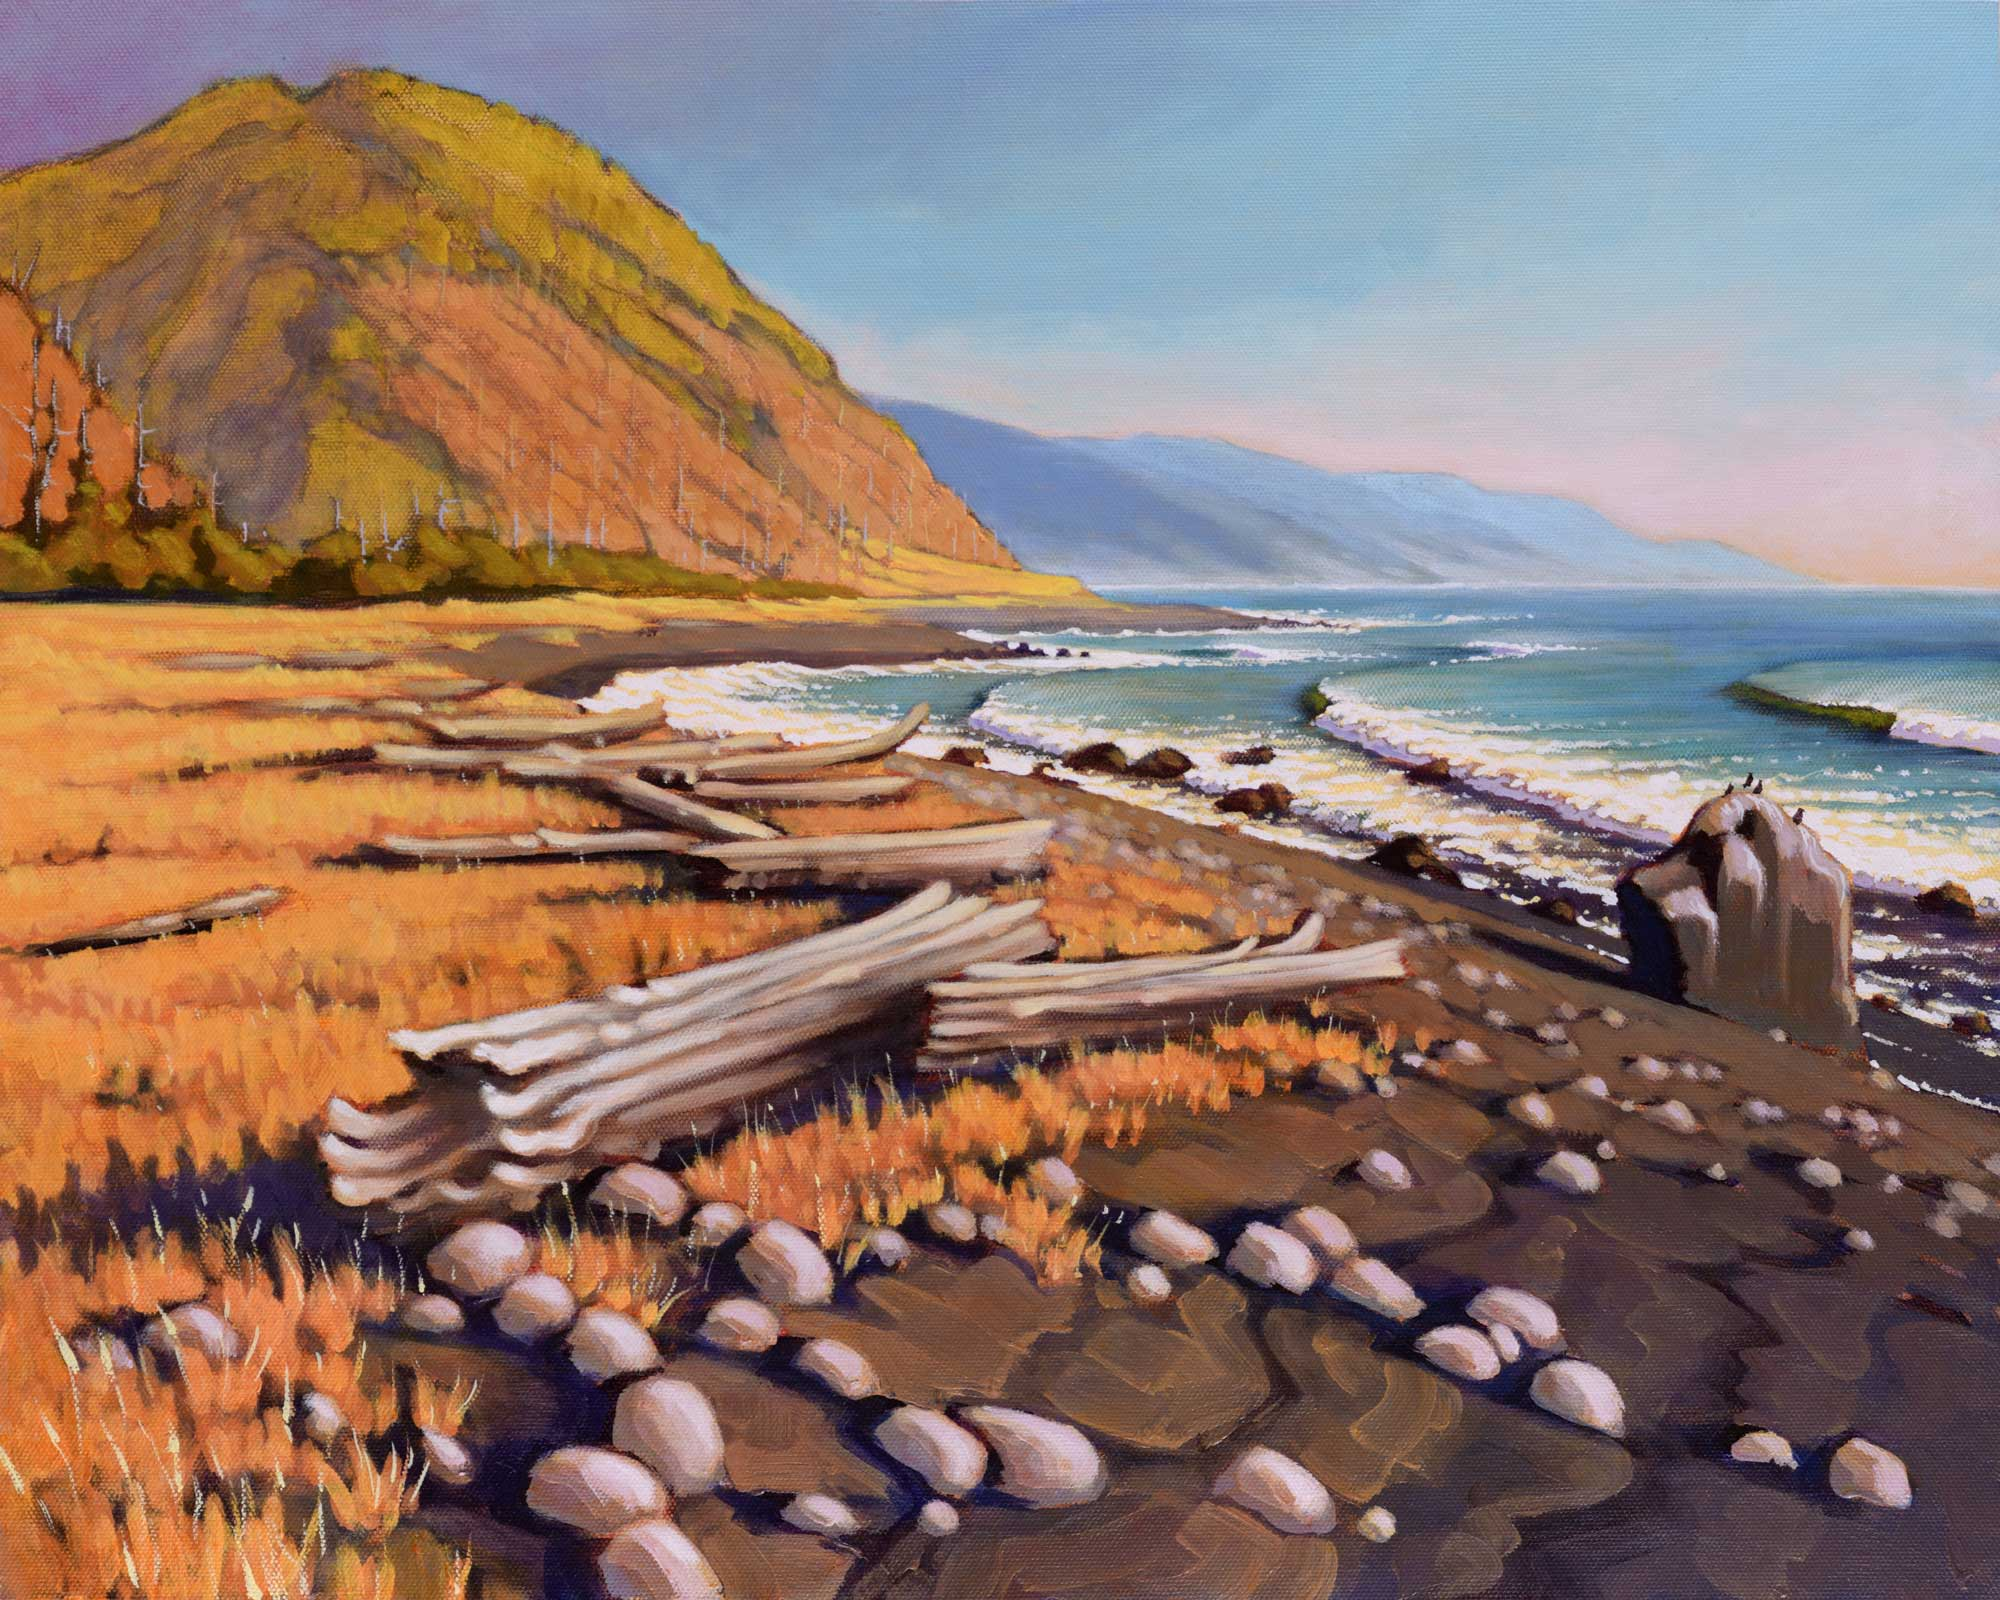 A plein air landscape painting of a rocky point on the far northern coast of California